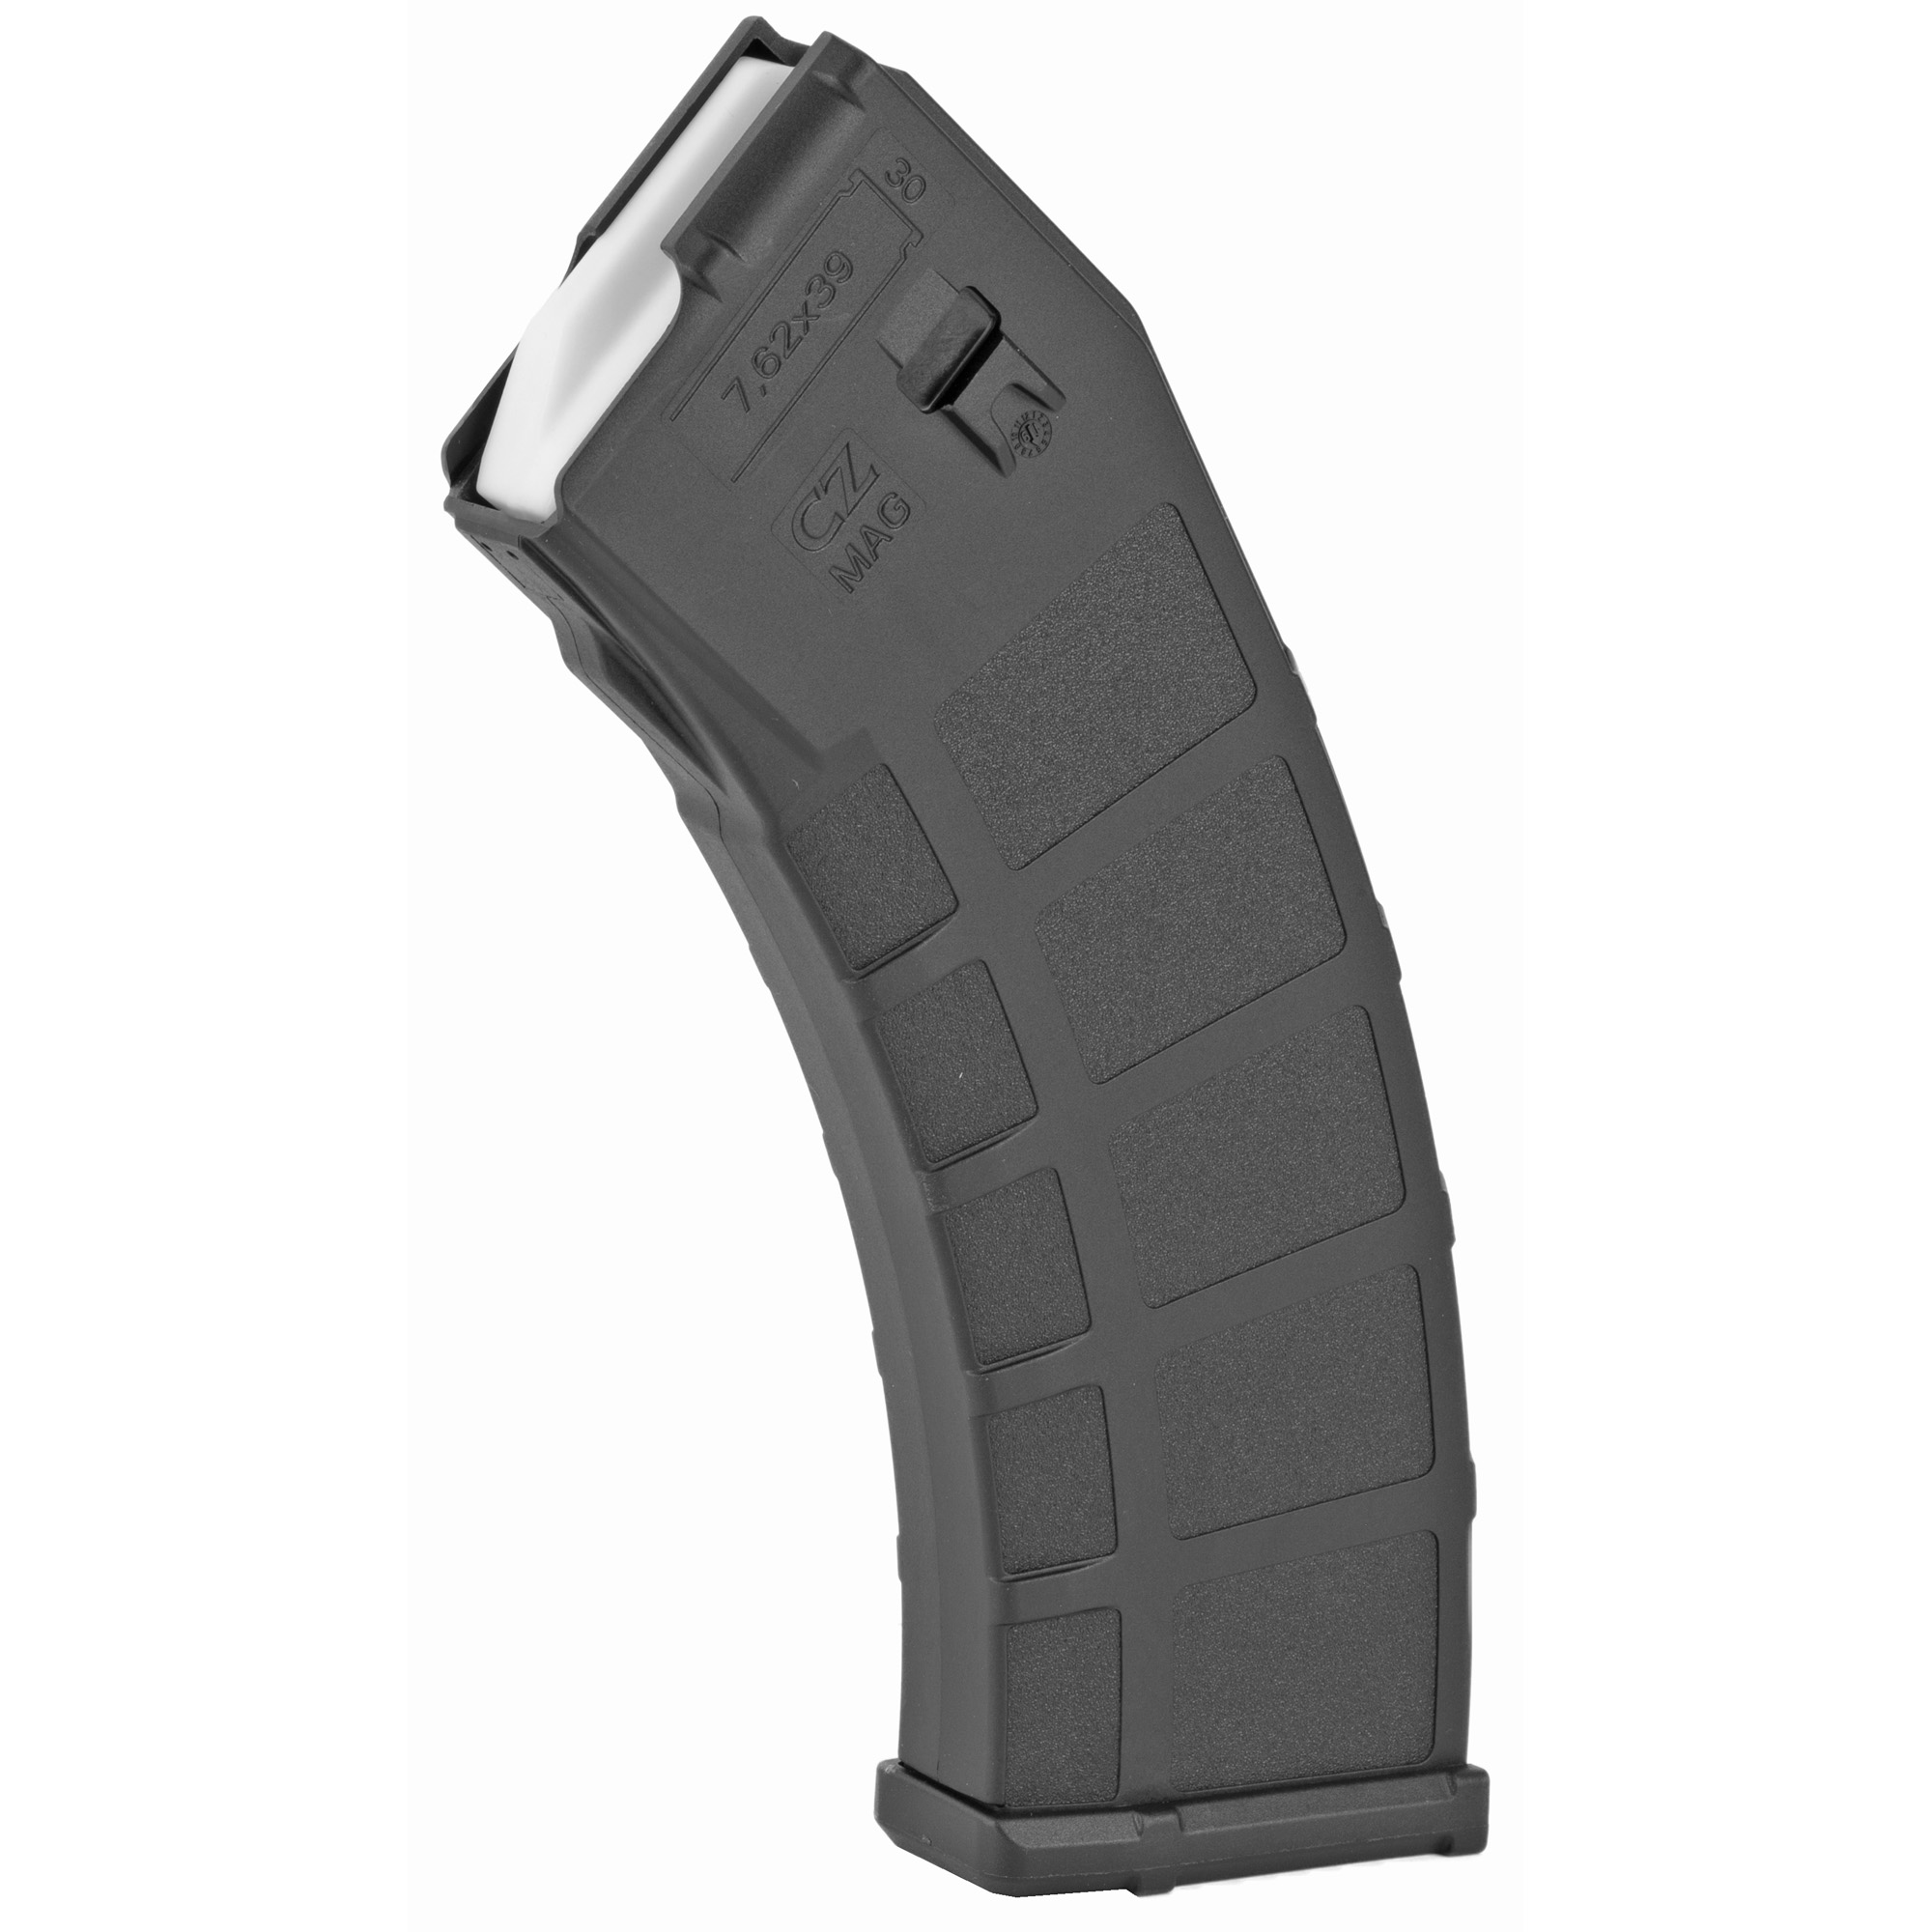 This CZ factory OEM magazine features polymer construction and is designed for reliable operation in the CZ BREN 2.